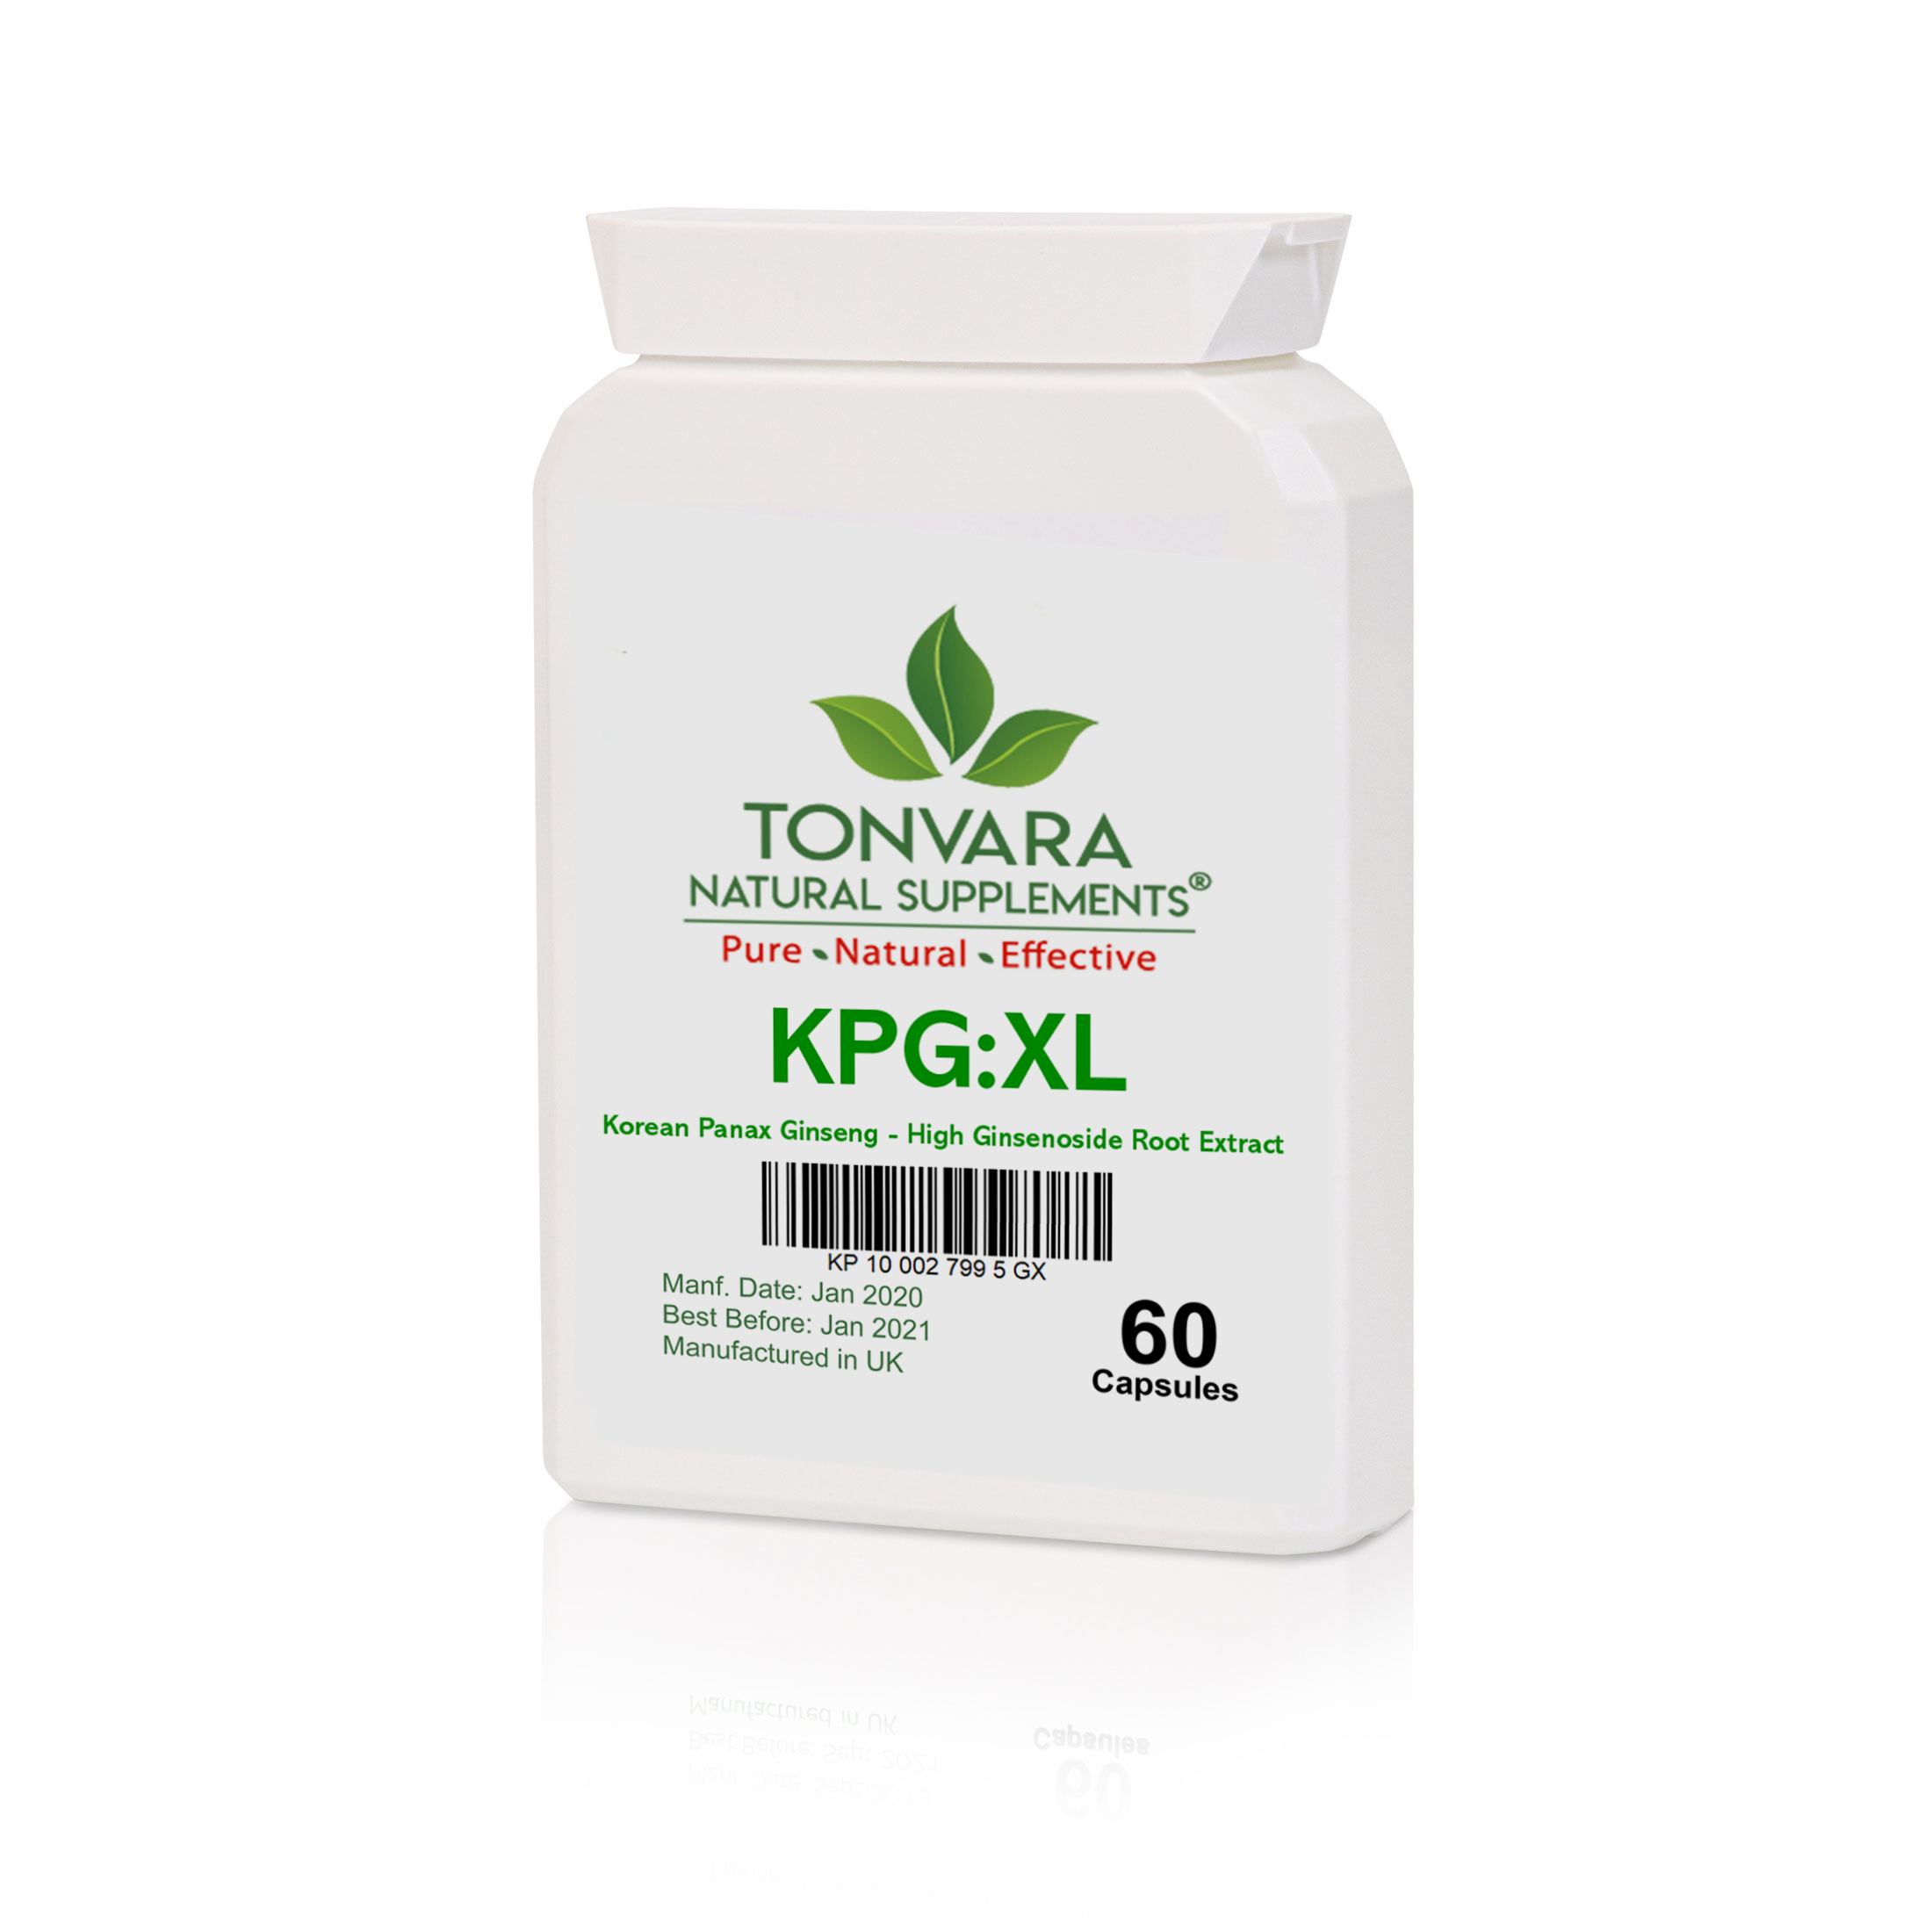 New Formula Tonvara KPG:XL Korean Panax Ginseng Pure Root Extract